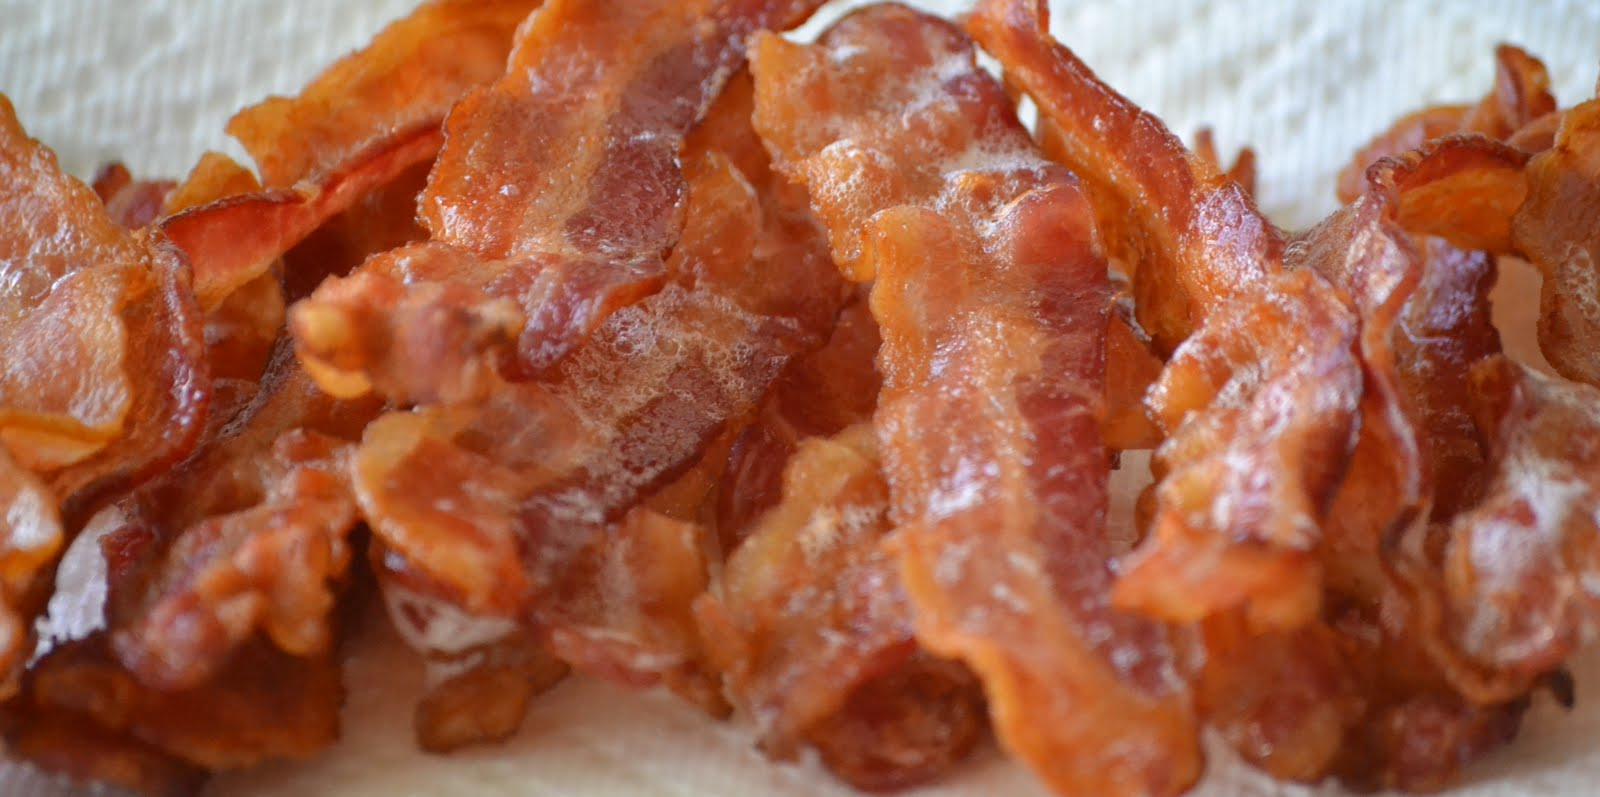 Crispy Bacon In Oven